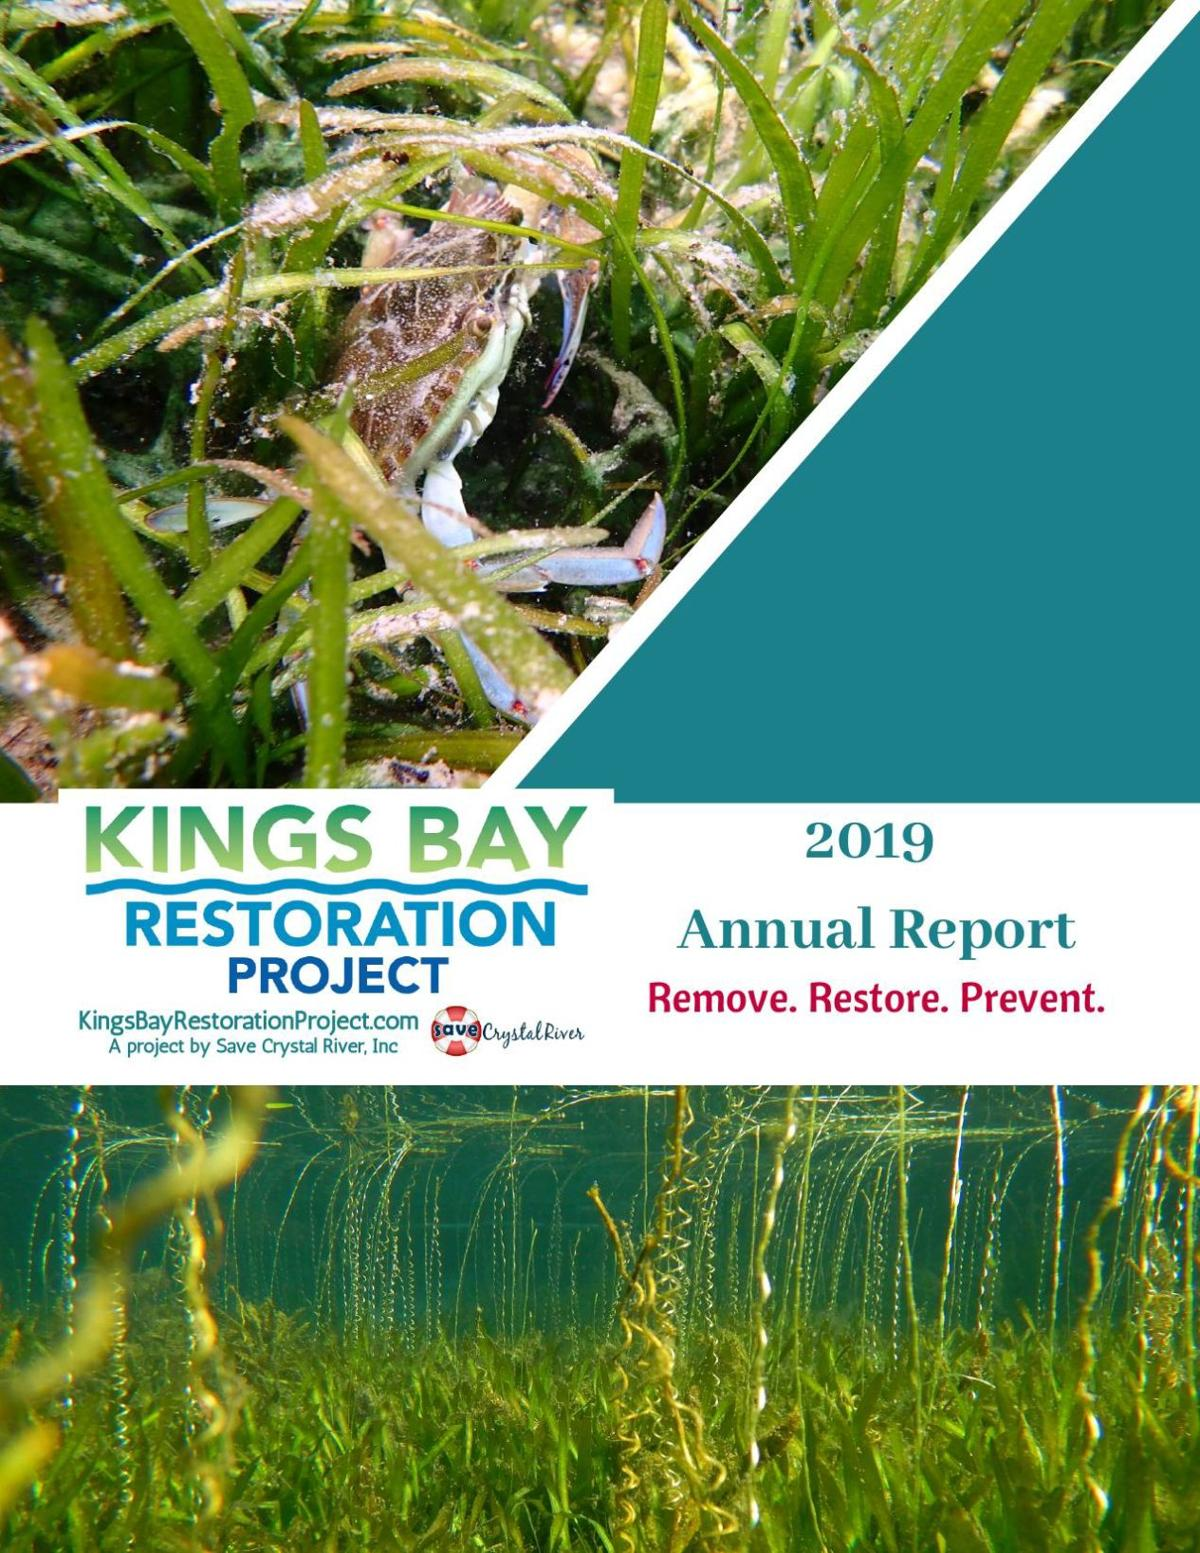 King's Bay Restoration Project 2019-20 Annual Report